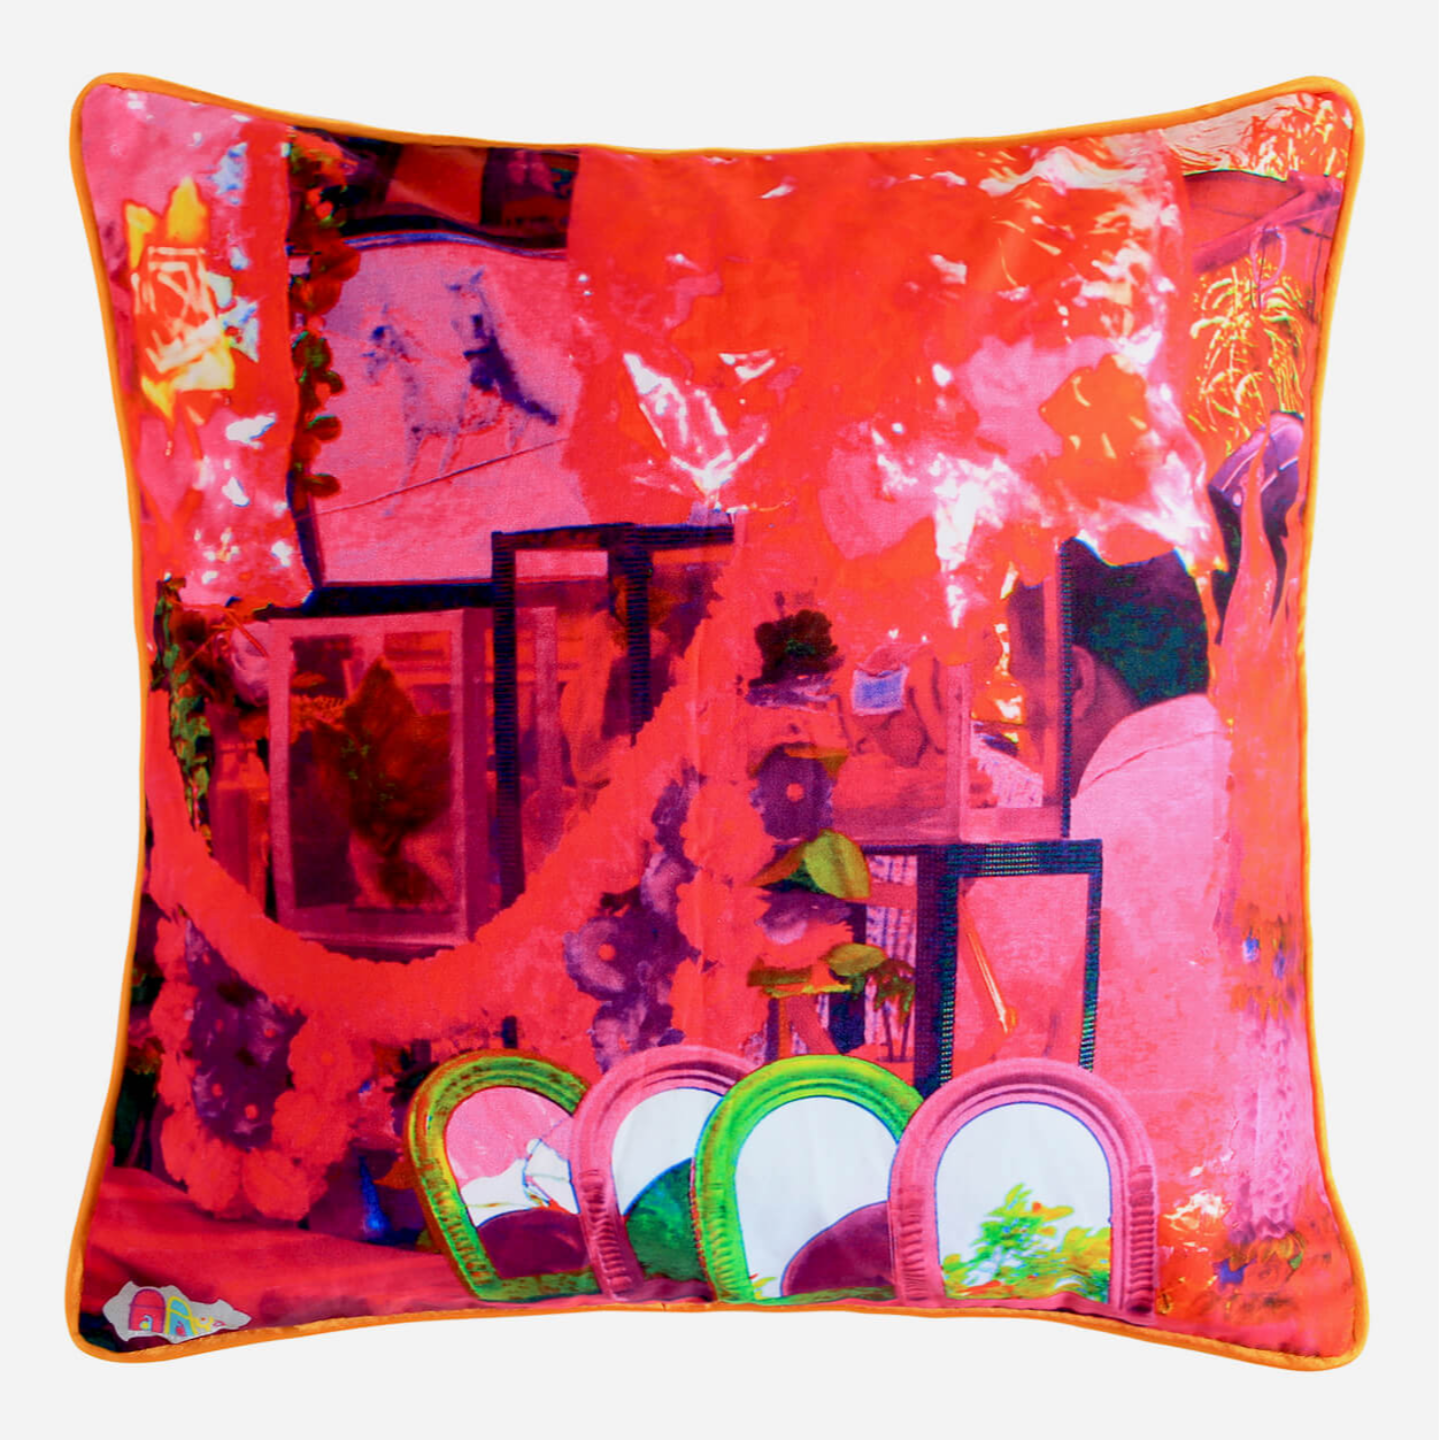 The Mirror Glaze Cotton Cushion Cover 16x16 Inches